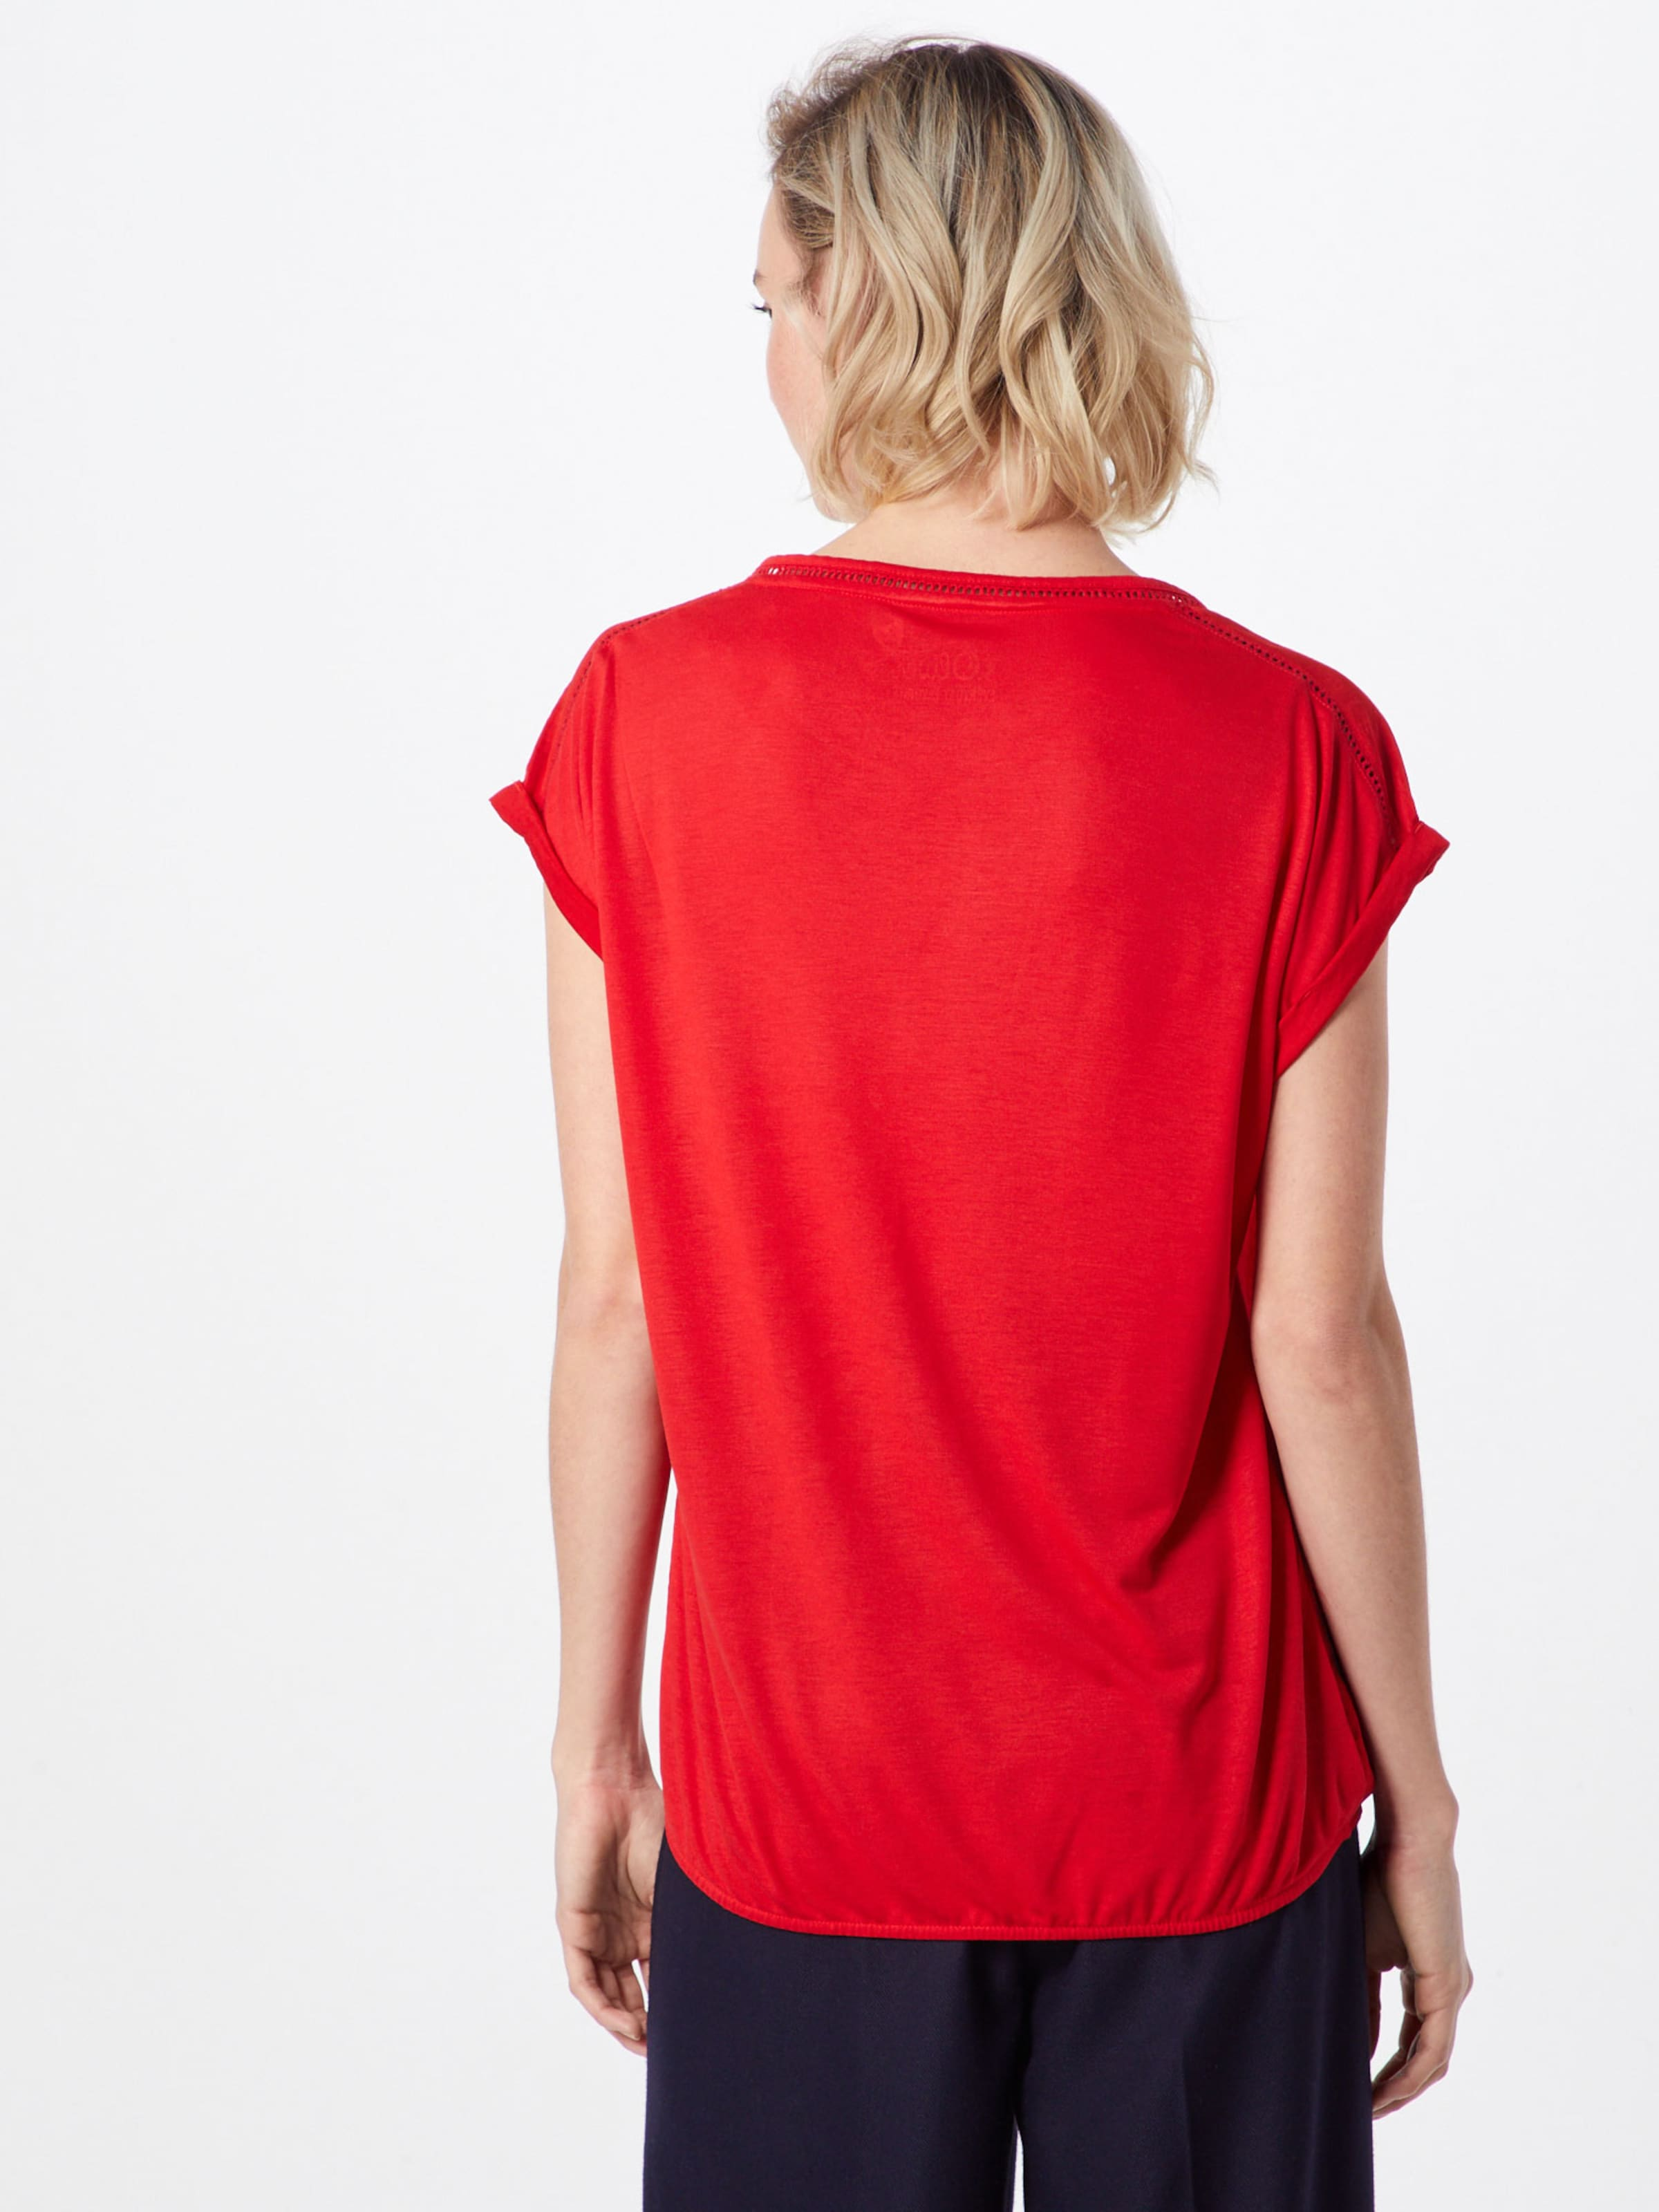 S oliver T Rot shirt Label Red In 3LAR5jq4